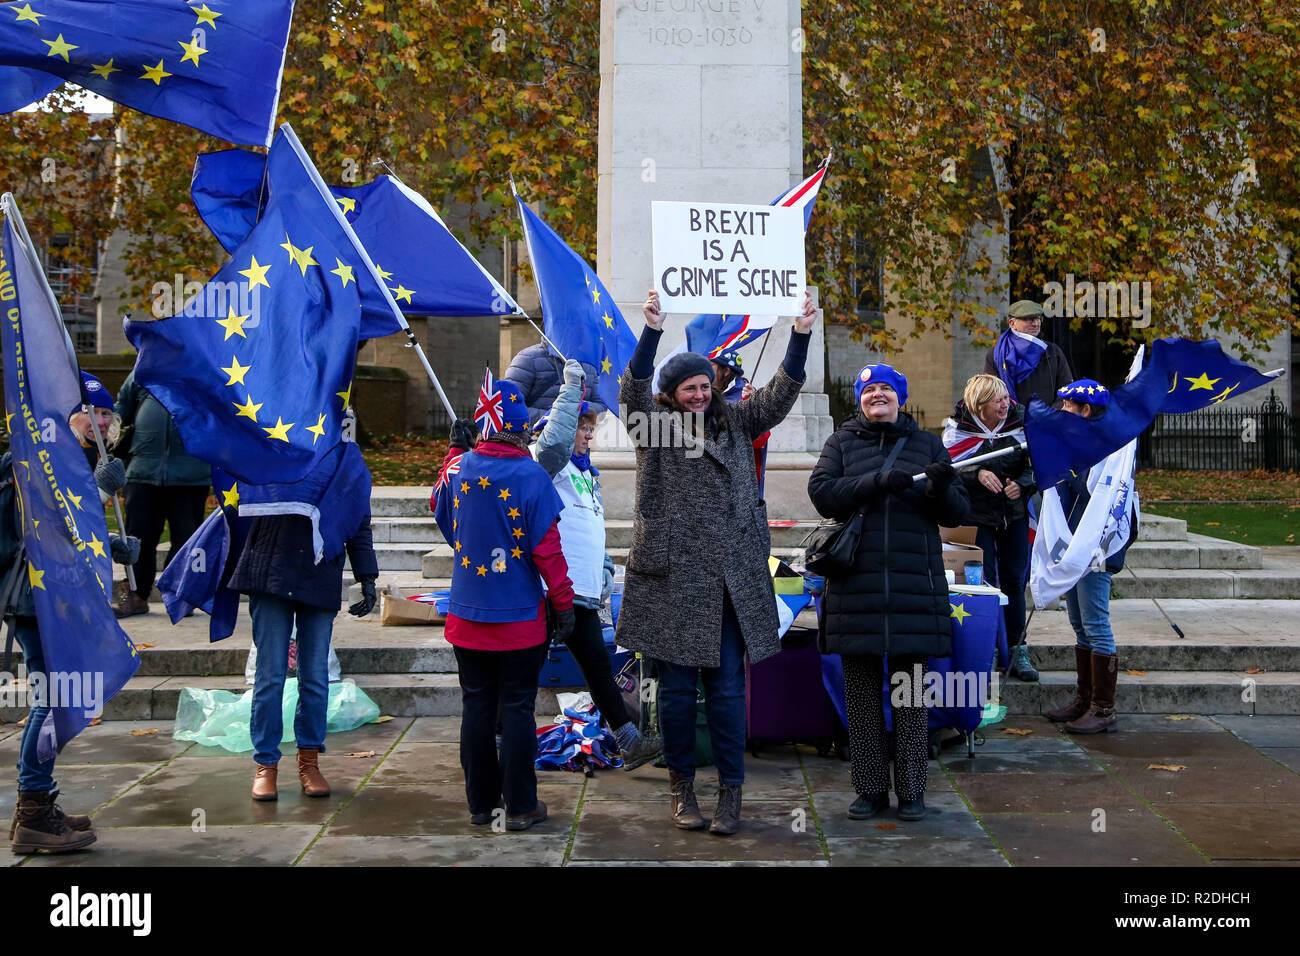 London, UK. 19th Nov, 2018. Pro-EU protesters are seen holding a placard and flags during the protest.Pro-EU protesters from SODEM (Stand in Defiance European Movement) including a large dinosaur demonstrates with their placards and European Union flags outside the Palace of Westminster in central London ahead of the crucial week of Brexit negotiations as Prime Minister Theresa May prepares to meet Chief negotiator Michel Barnier later this week to discuss the withdrawal deal. Credit: Dinendra Haria/SOPA Images/ZUMA Wire/Alamy Live News - Stock Image